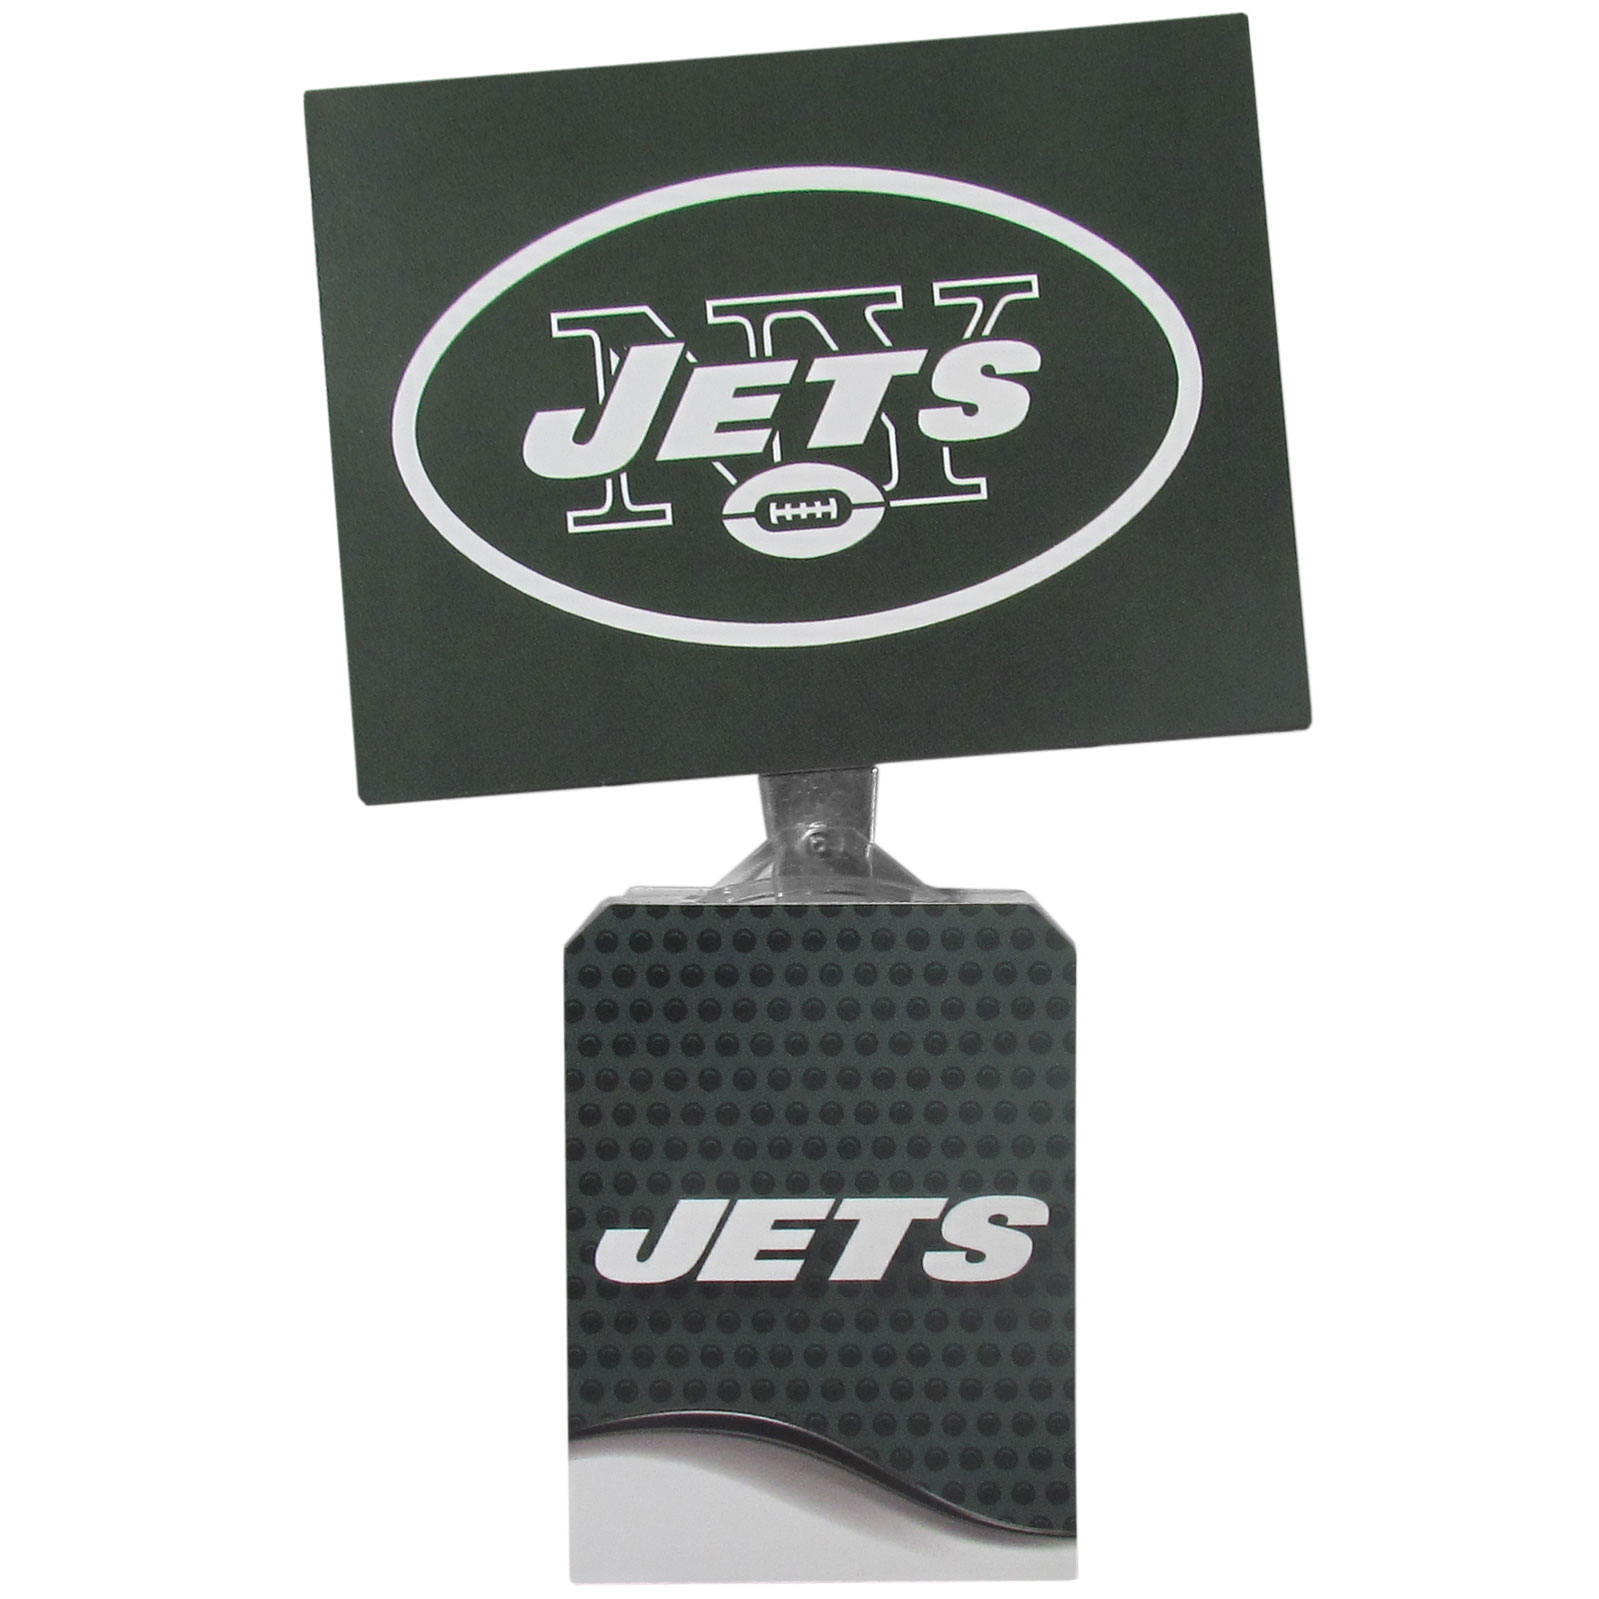 New York Jets Solar Flags - Get pumped up on the way to game with Siskiyou's Chicago Bears New York Jets Solar Flag that mounts to your dashboard or window. The in-motion solar flag also doubles as decoration for your tailgate or homegate! The base of the flag is 3 inches tall and the flag is 4 inches making the entire in-motion solar flag stand at 7 inches tall. Keep your spirit moving with your favorite team's Solar Flag.